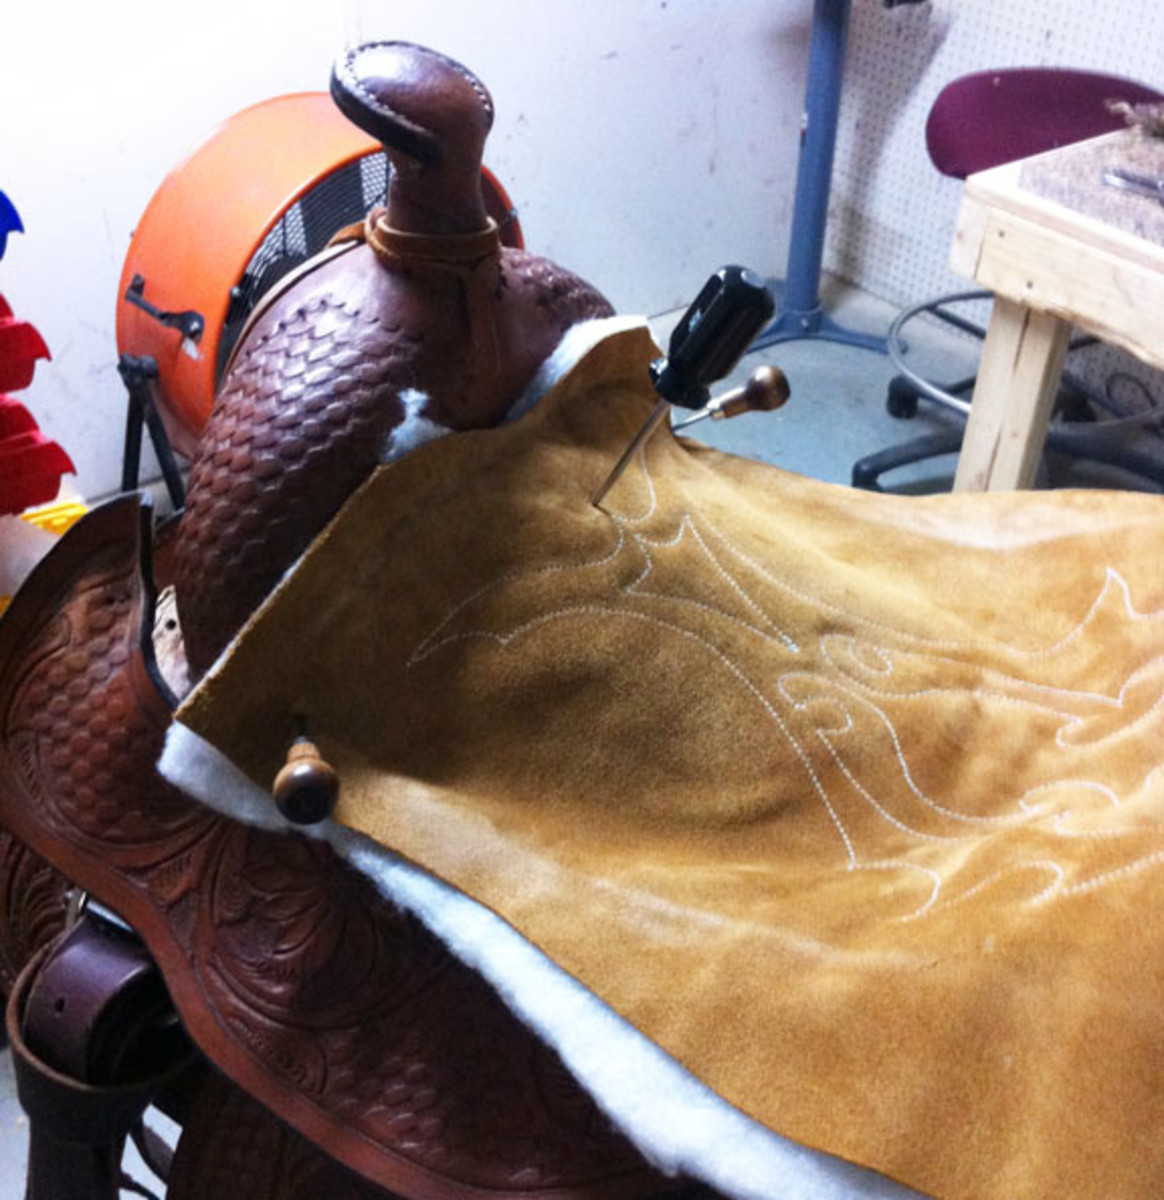 Fitting new seat leather at front to western saddle